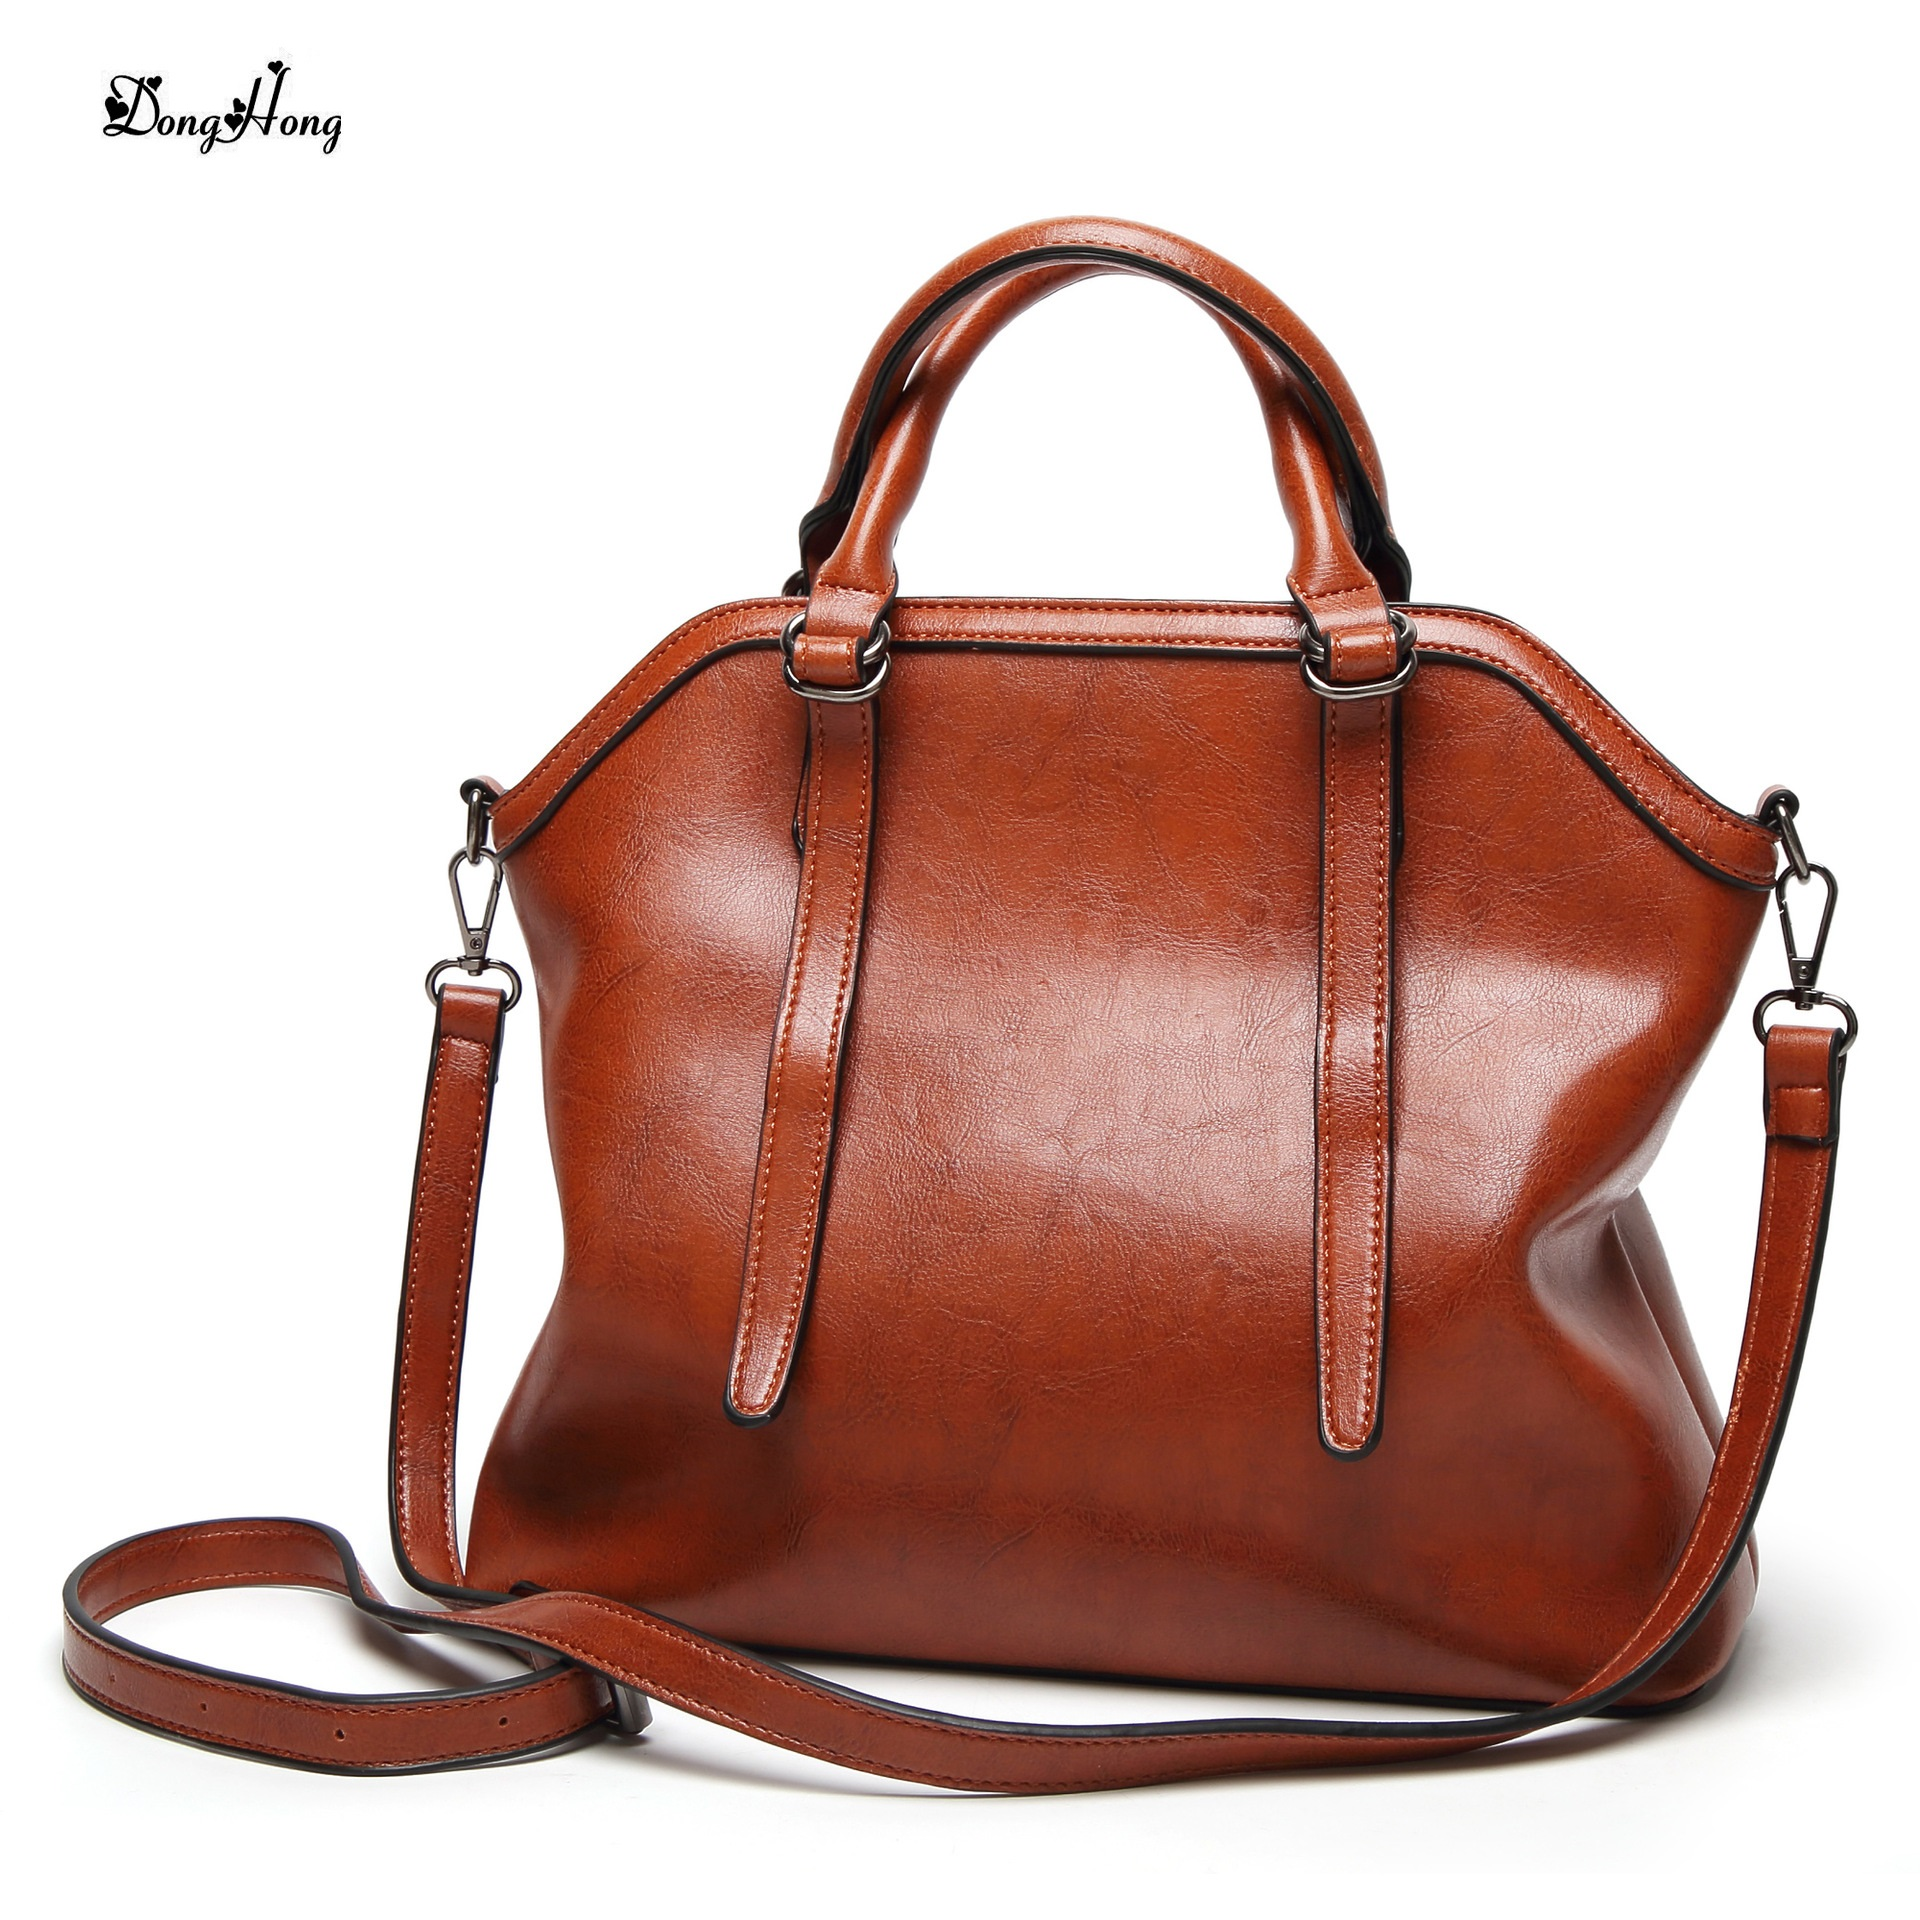 цена Genuine Leather Handbag Luxury Handbags Women Bags Designer Bolsa Feminina Sac a Main Bolsos Tote Borse 2017 Big Shoulder Bag